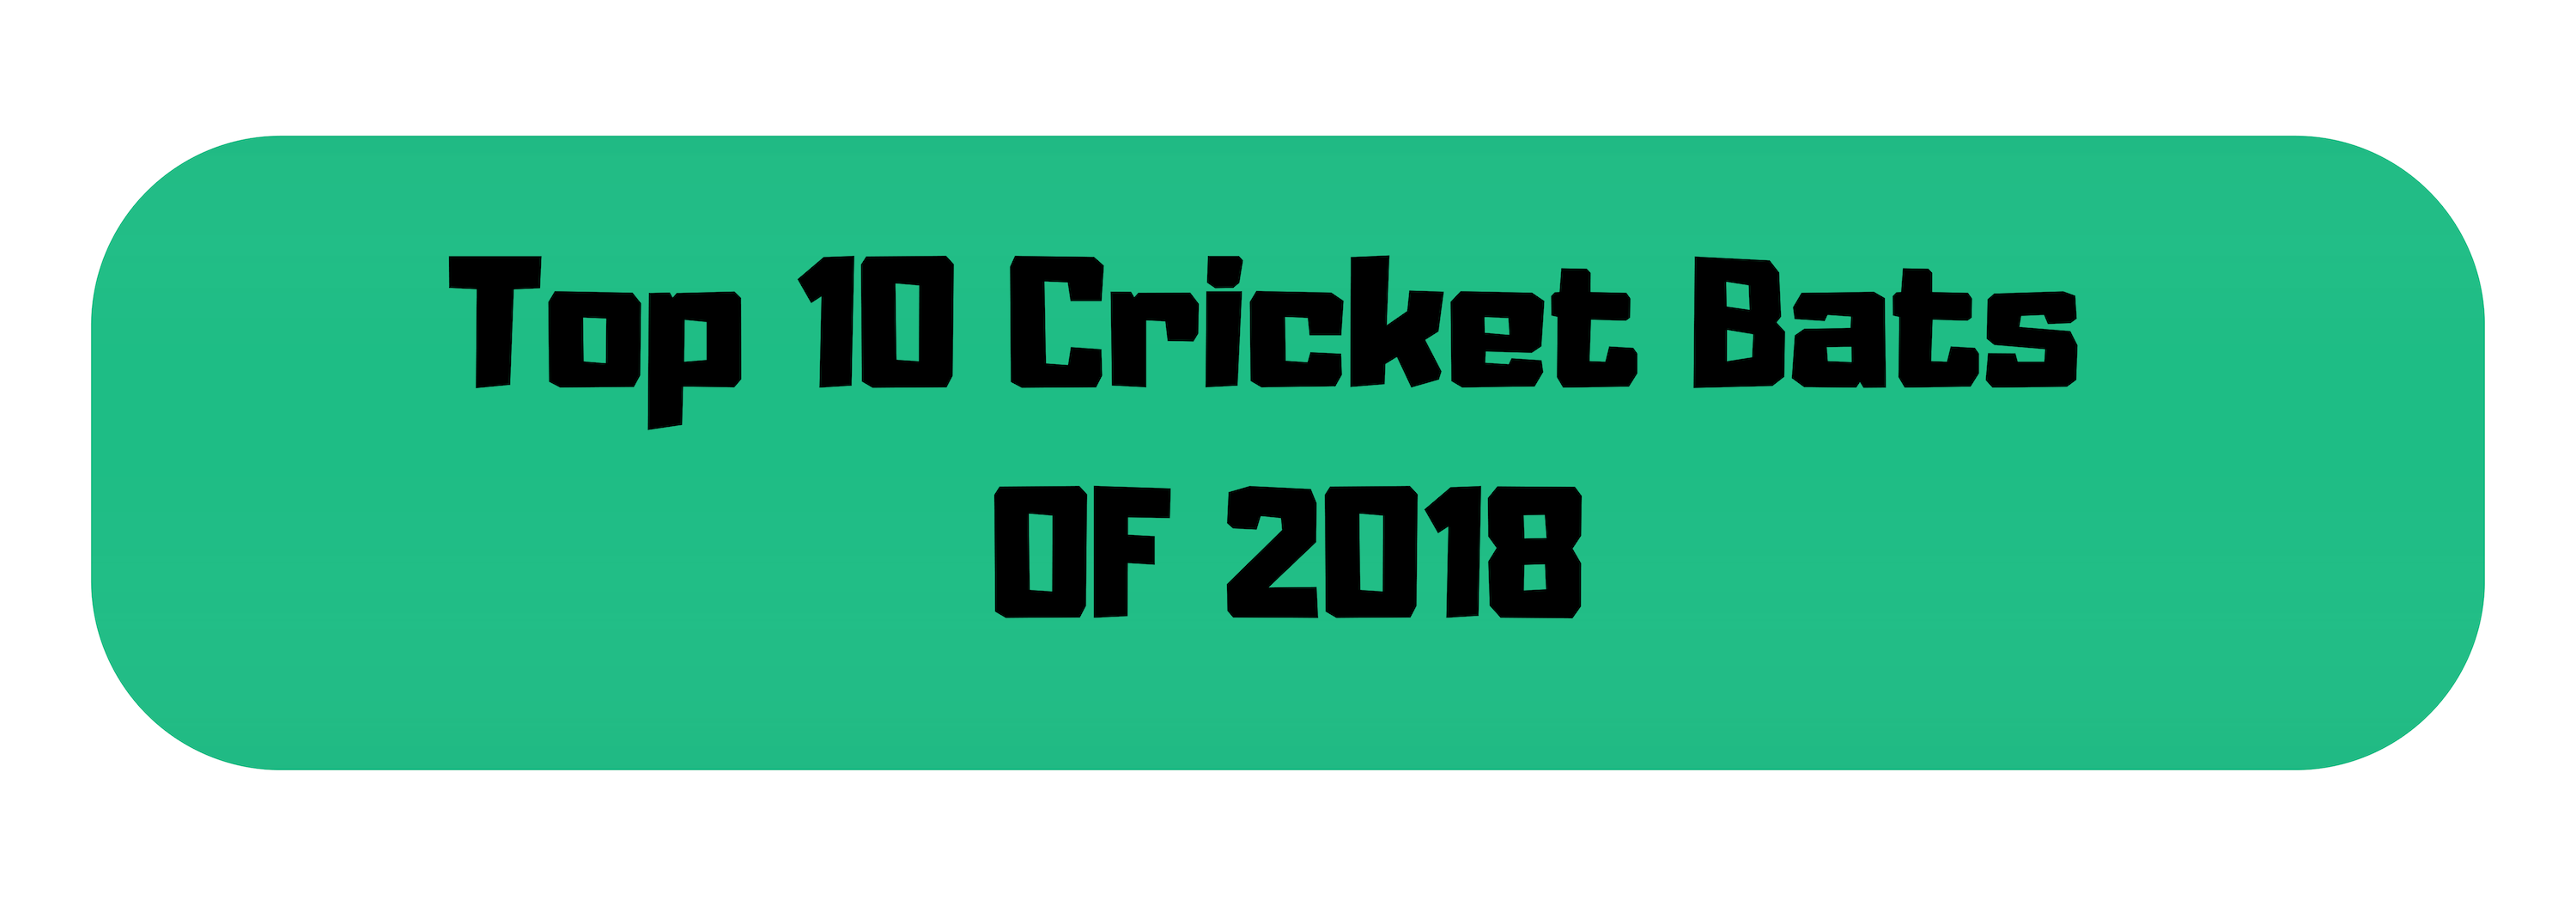 Top 10 cricket bats in the world 2018